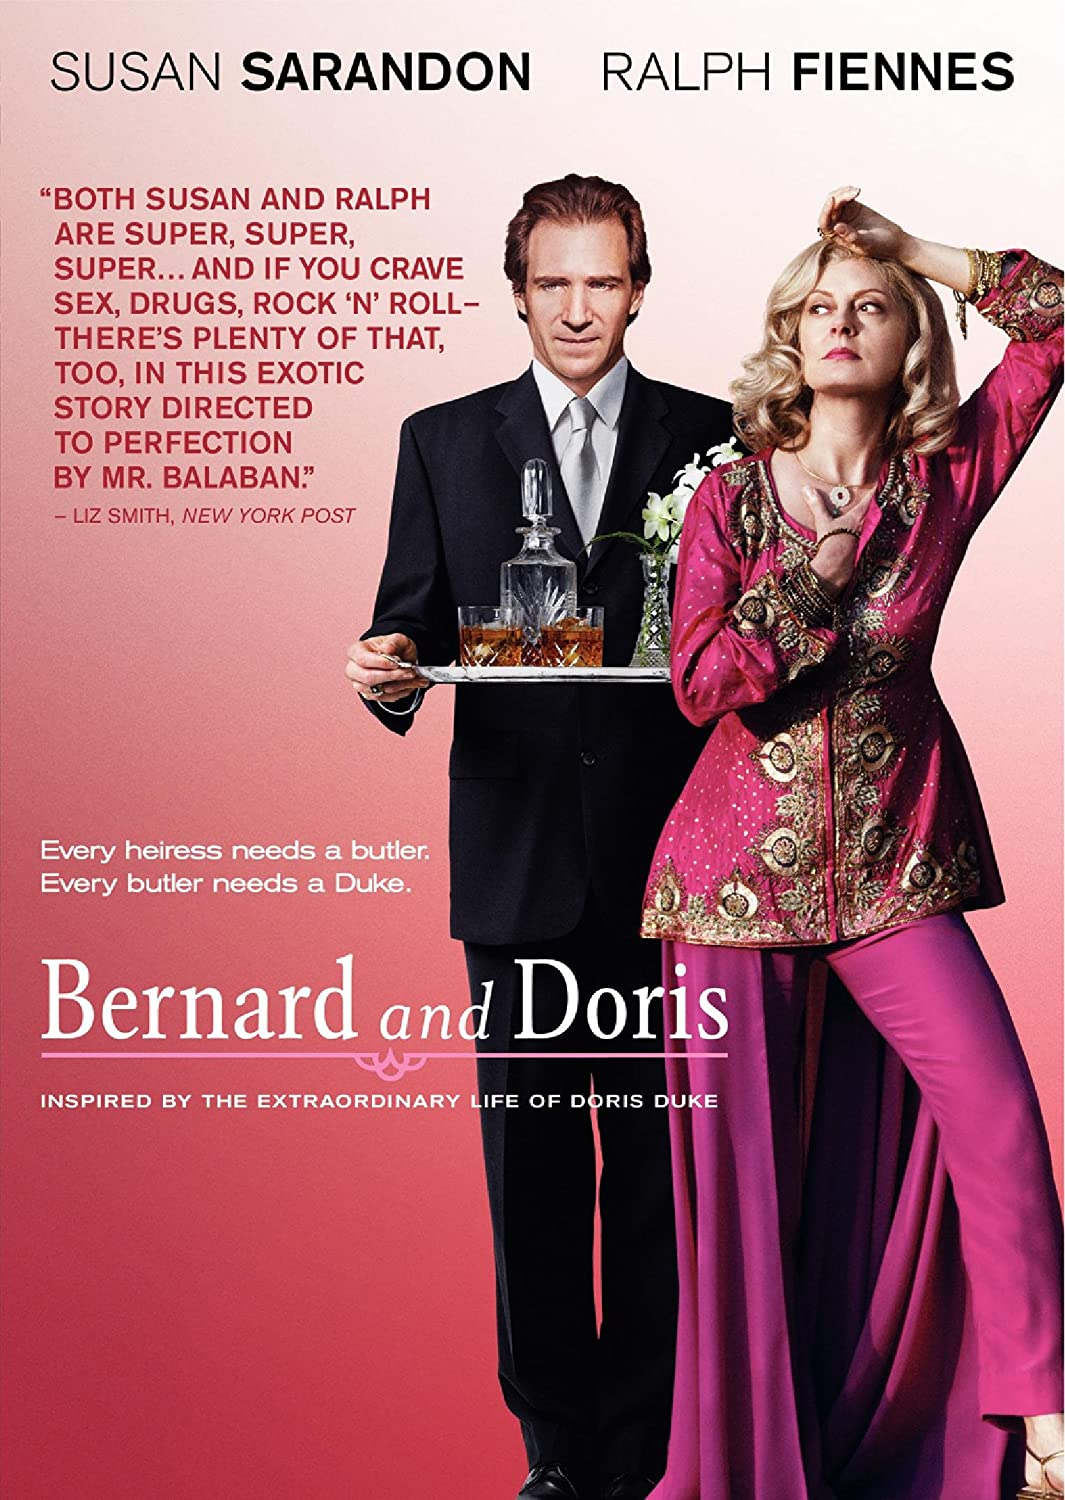 Bernard and doris movie wallpapers wi4k. Net.